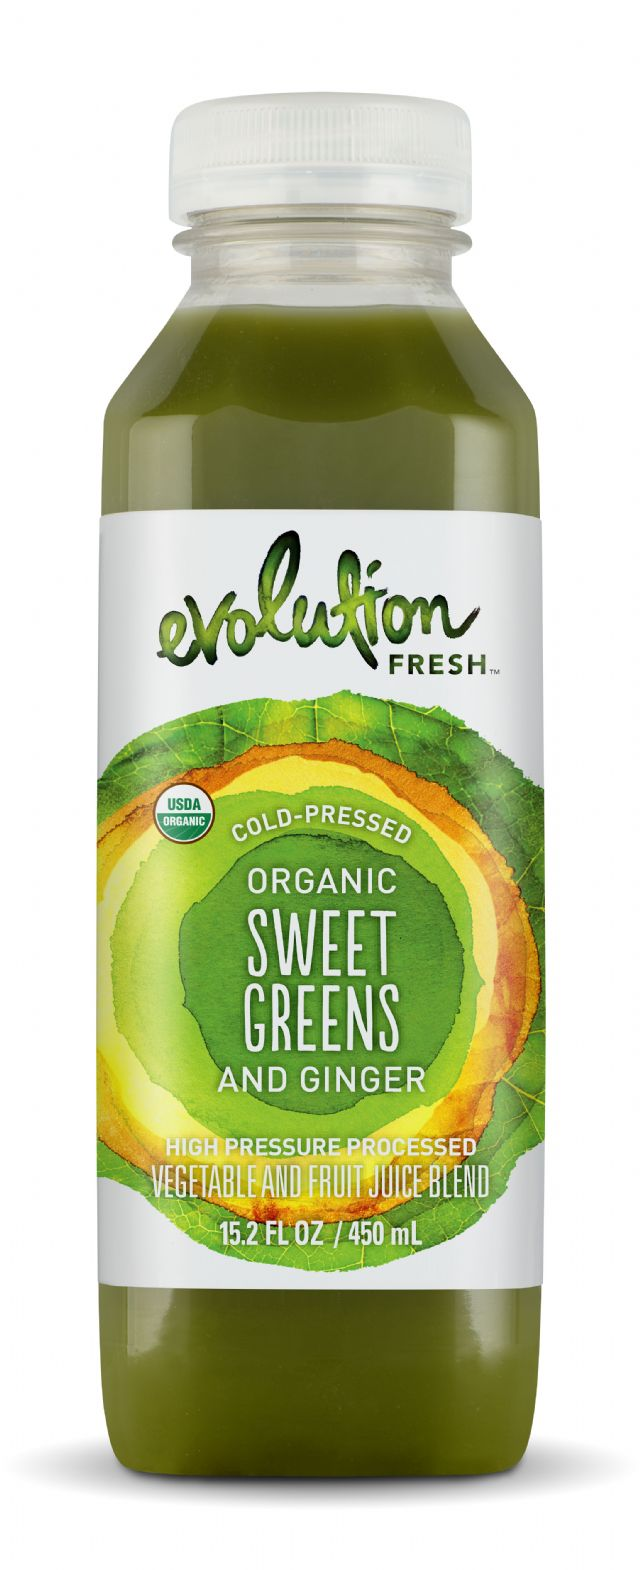 Evolution Fresh: OrganicSweetGreenandGinger copy